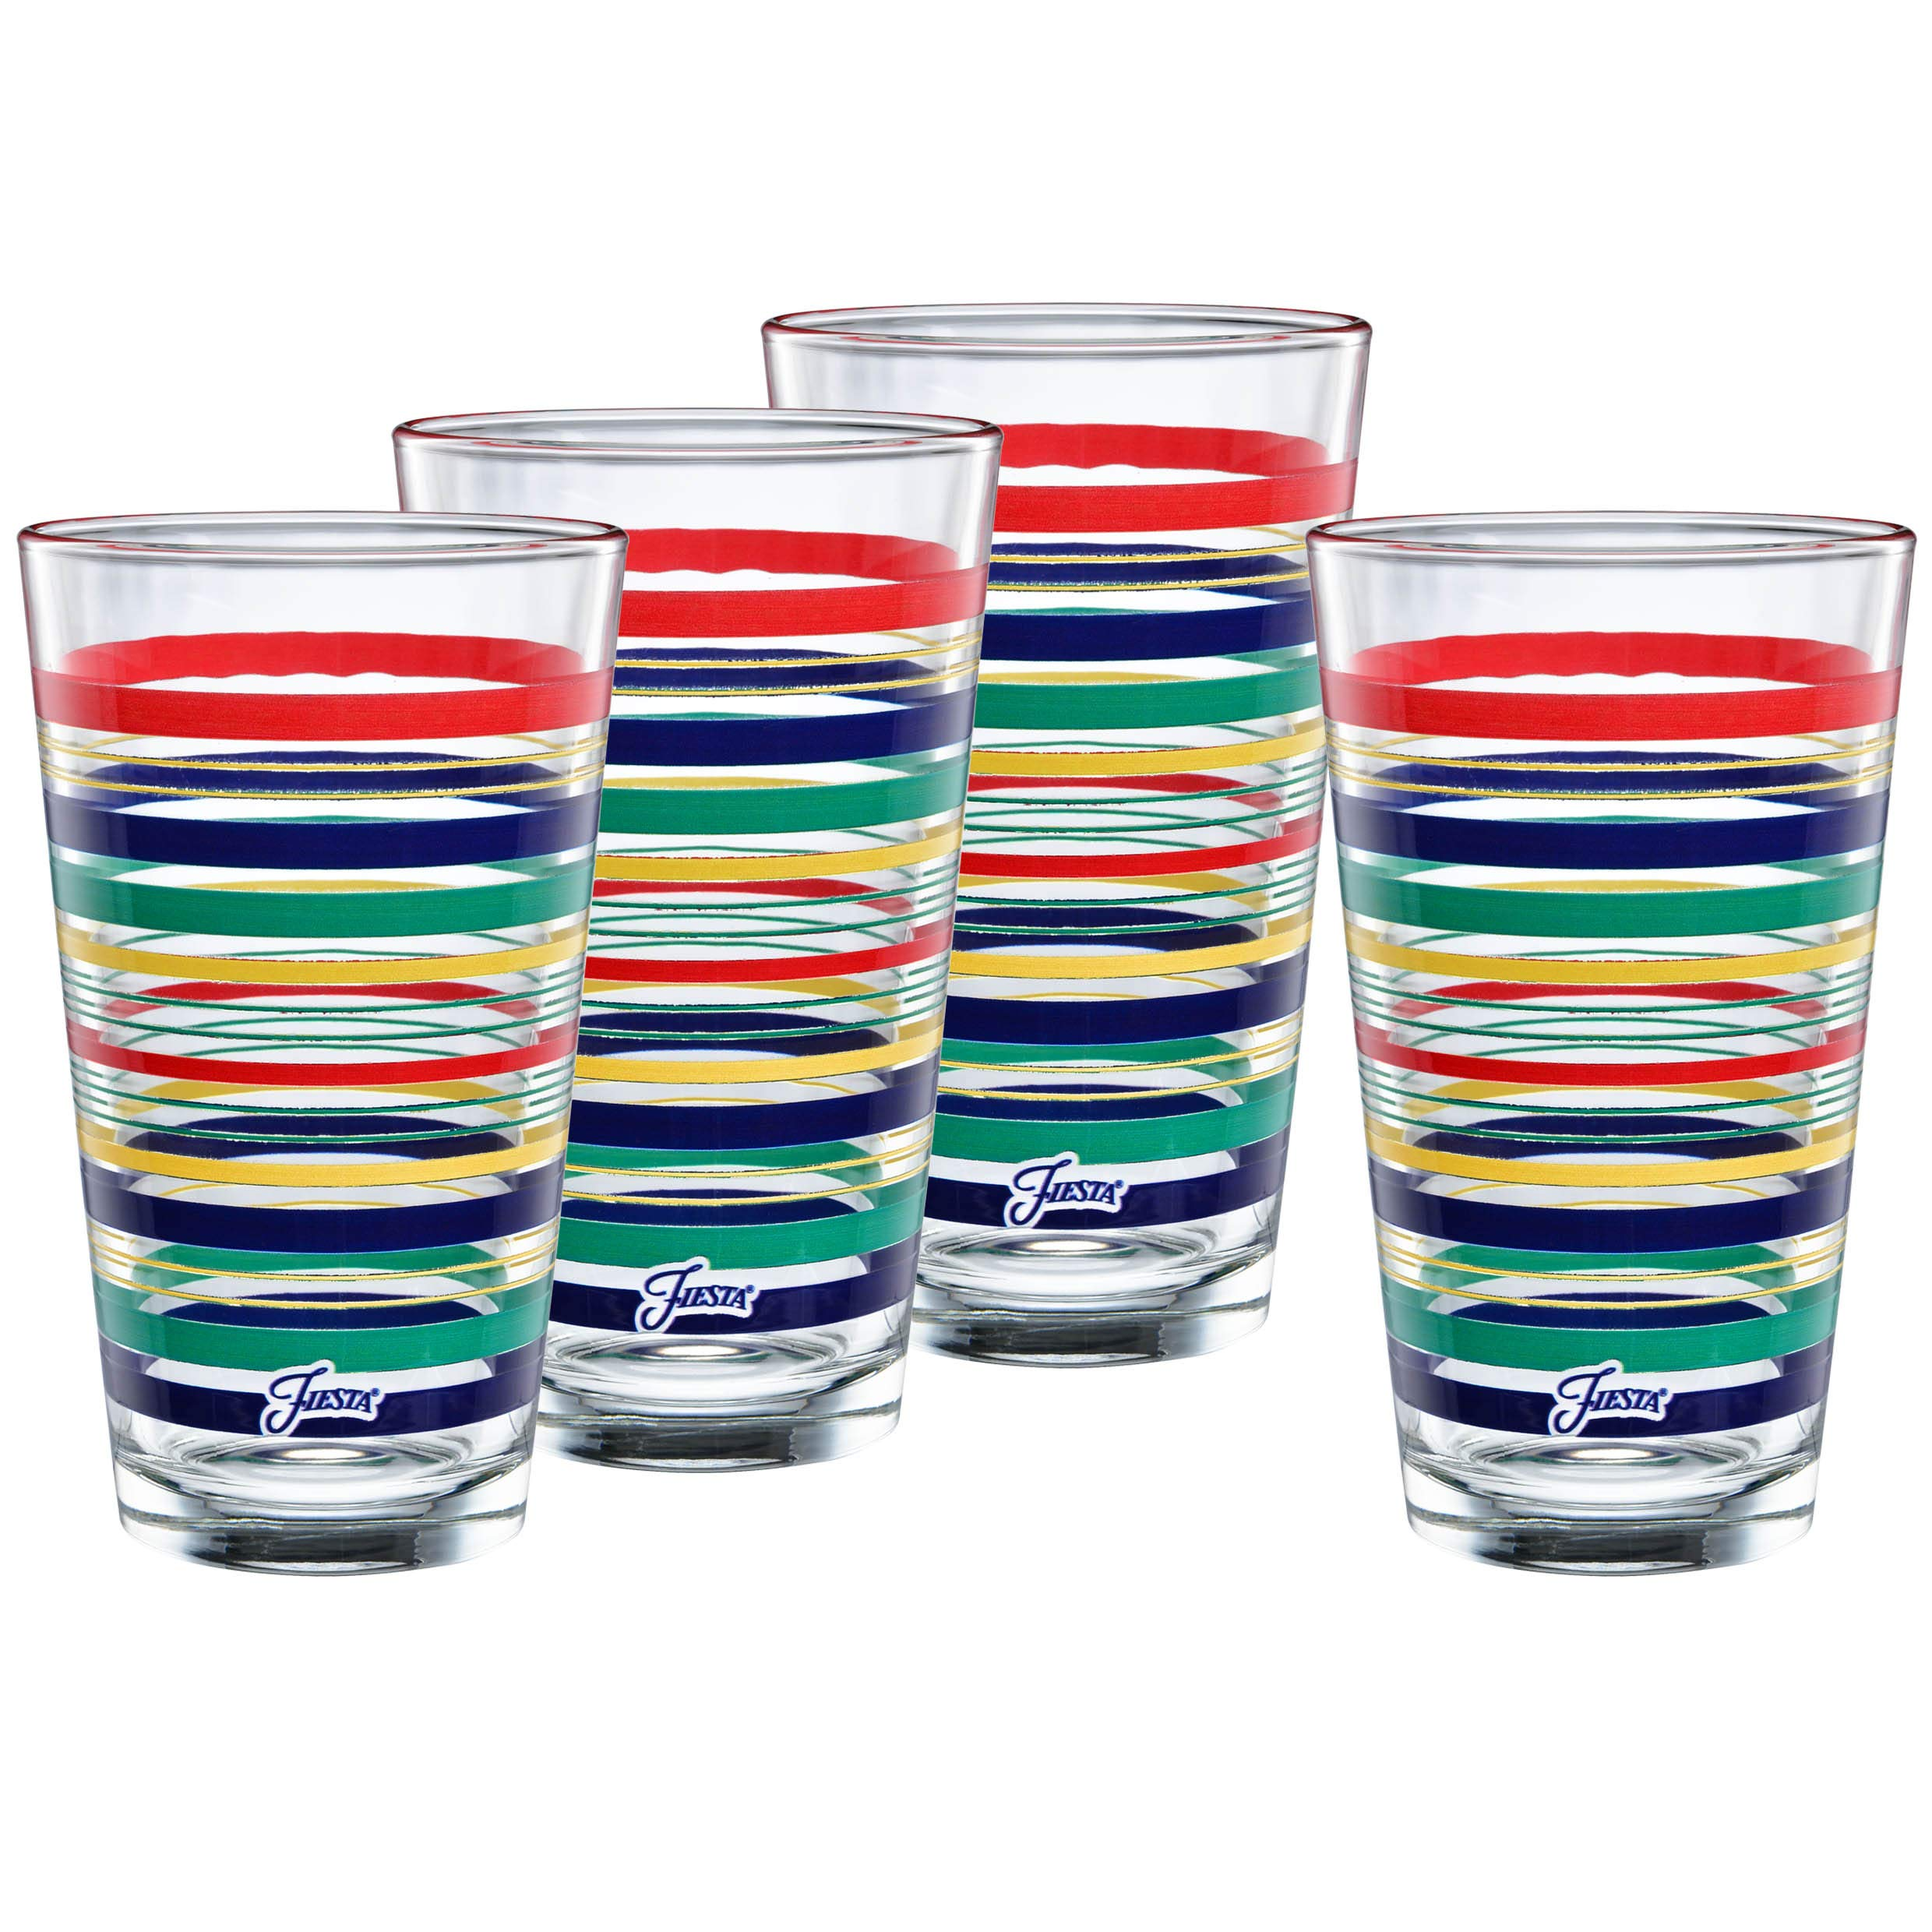 Officially Licensed Fiesta Stripes 16-Ounce Tapered Cooler Glass (Set of 4) (Cobalt Collection)